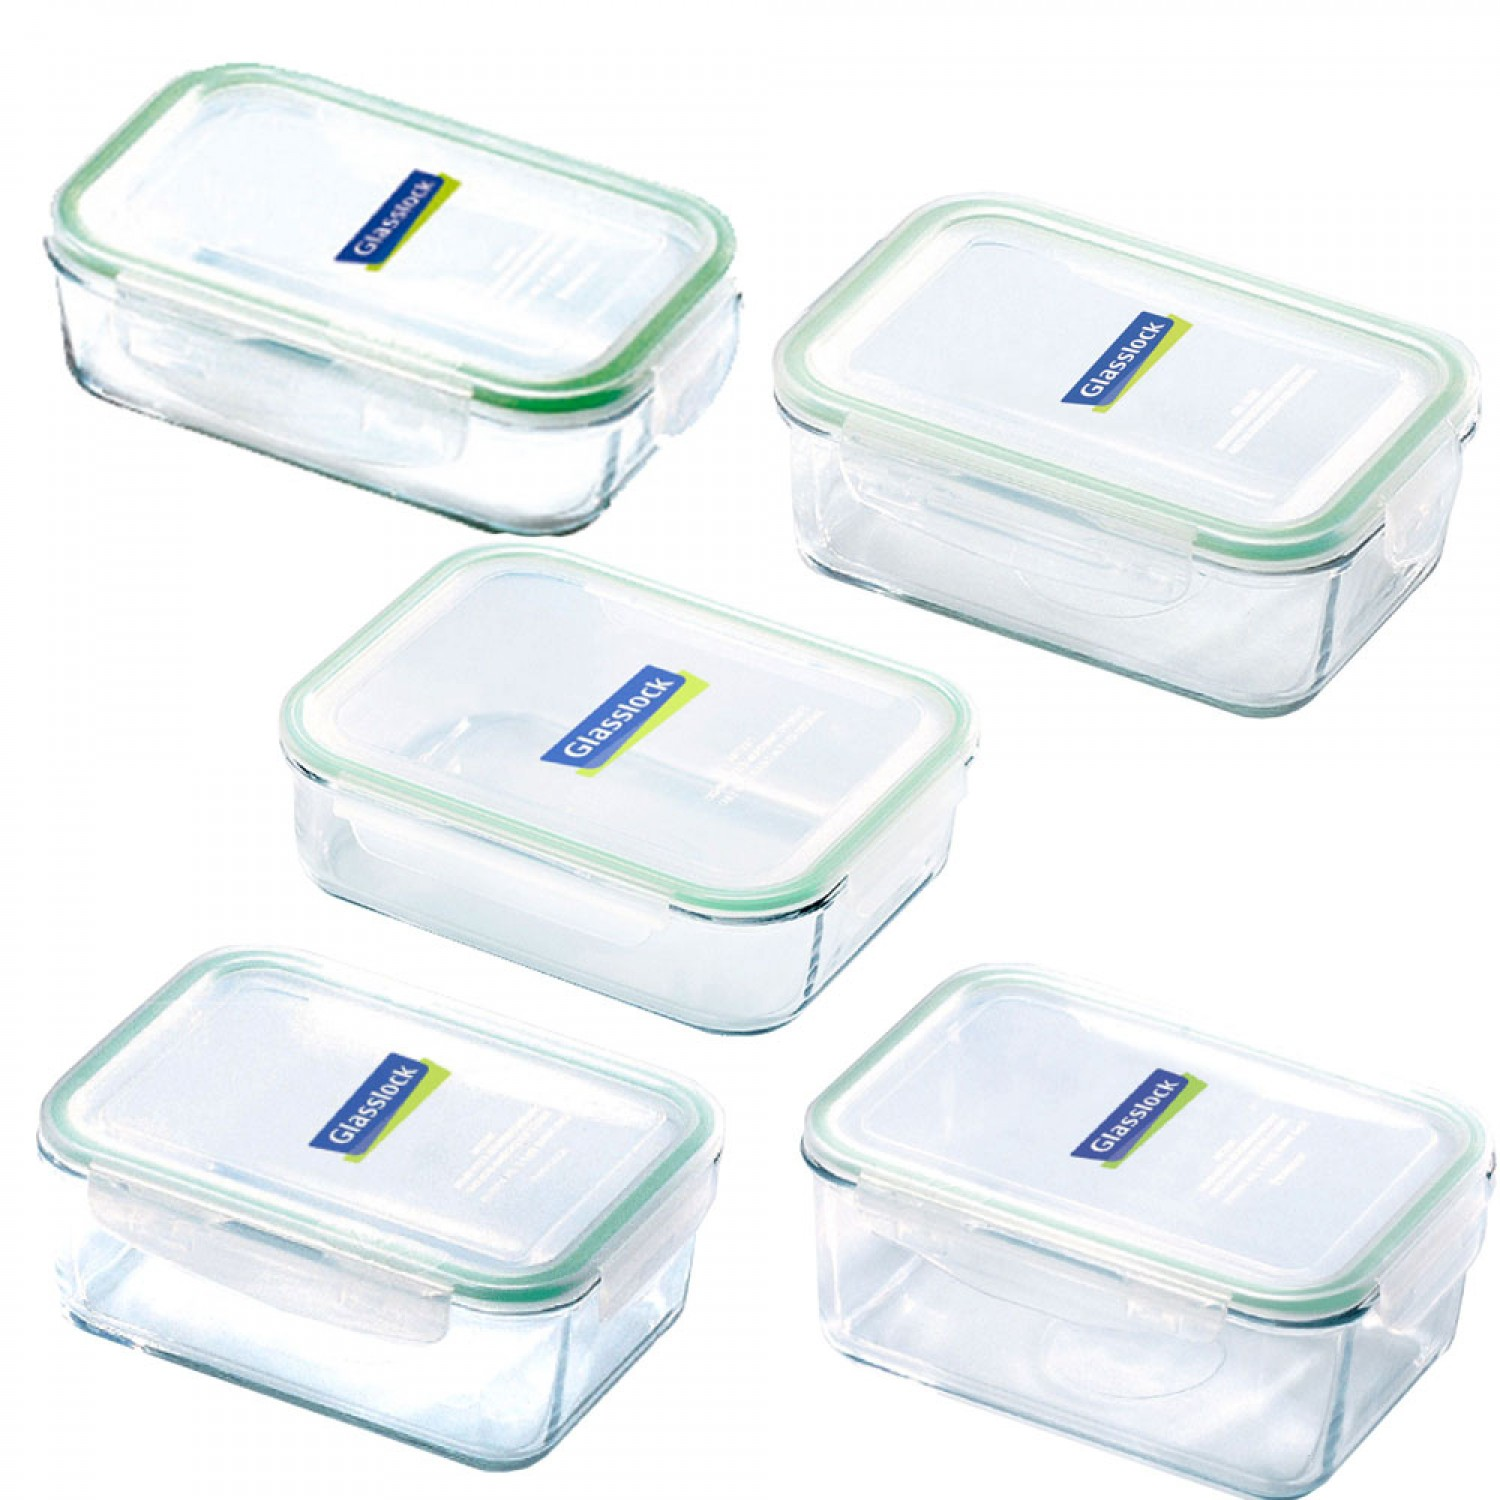 Frischhaltedosen Glas Classic Food Containers Wide Range By Glasslock Greenpicks